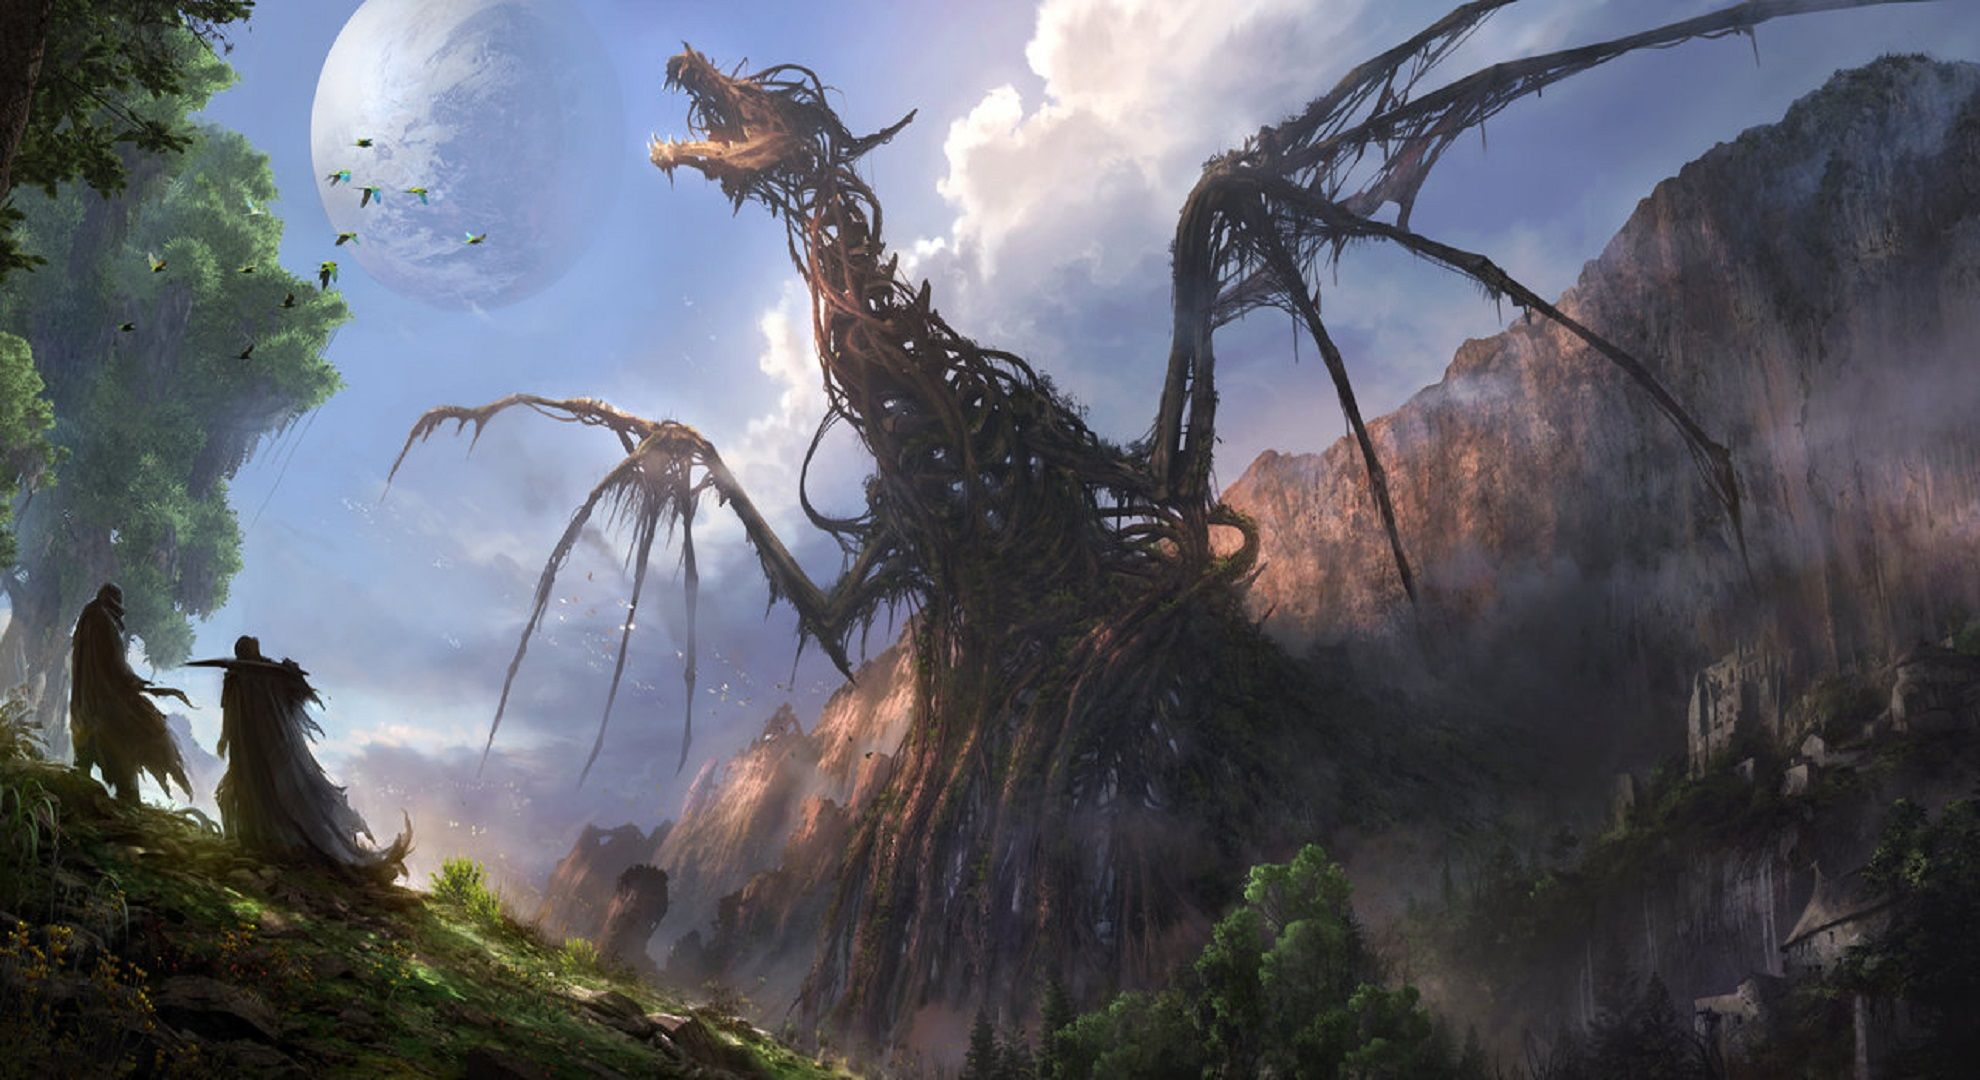 Giant Dragon Wallpapers Top Free Giant Dragon Backgrounds Wallpaperaccess